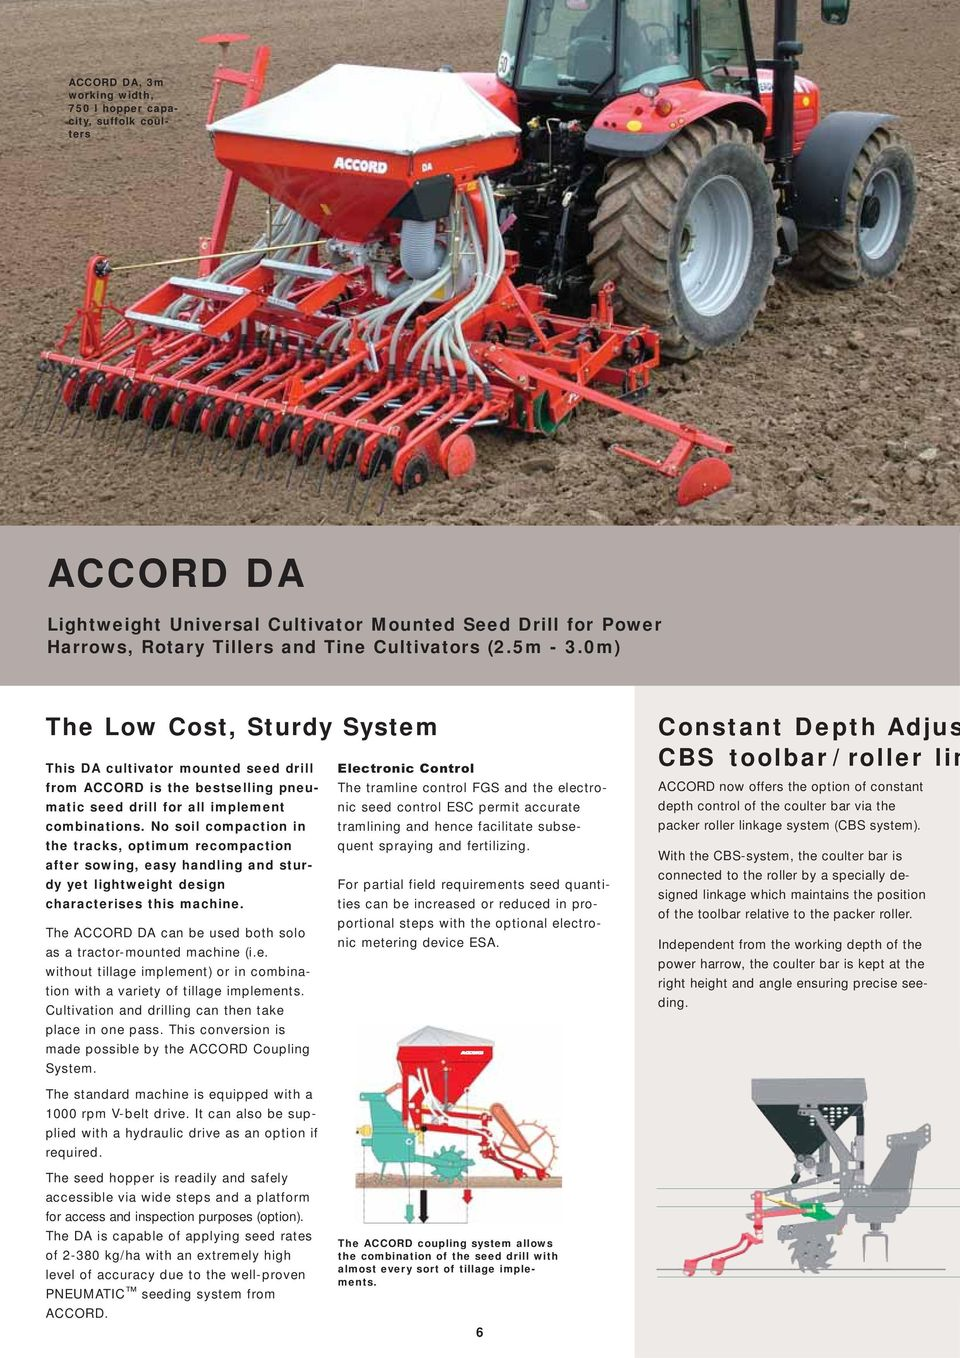 Pneumatic Seed Drills The Specialists In Seeding Pdf Rotative Speed Regulator Borer Driller Controller Tramline Control Fgs And Electro Combinations No Soil Compaction Tramlining Hence